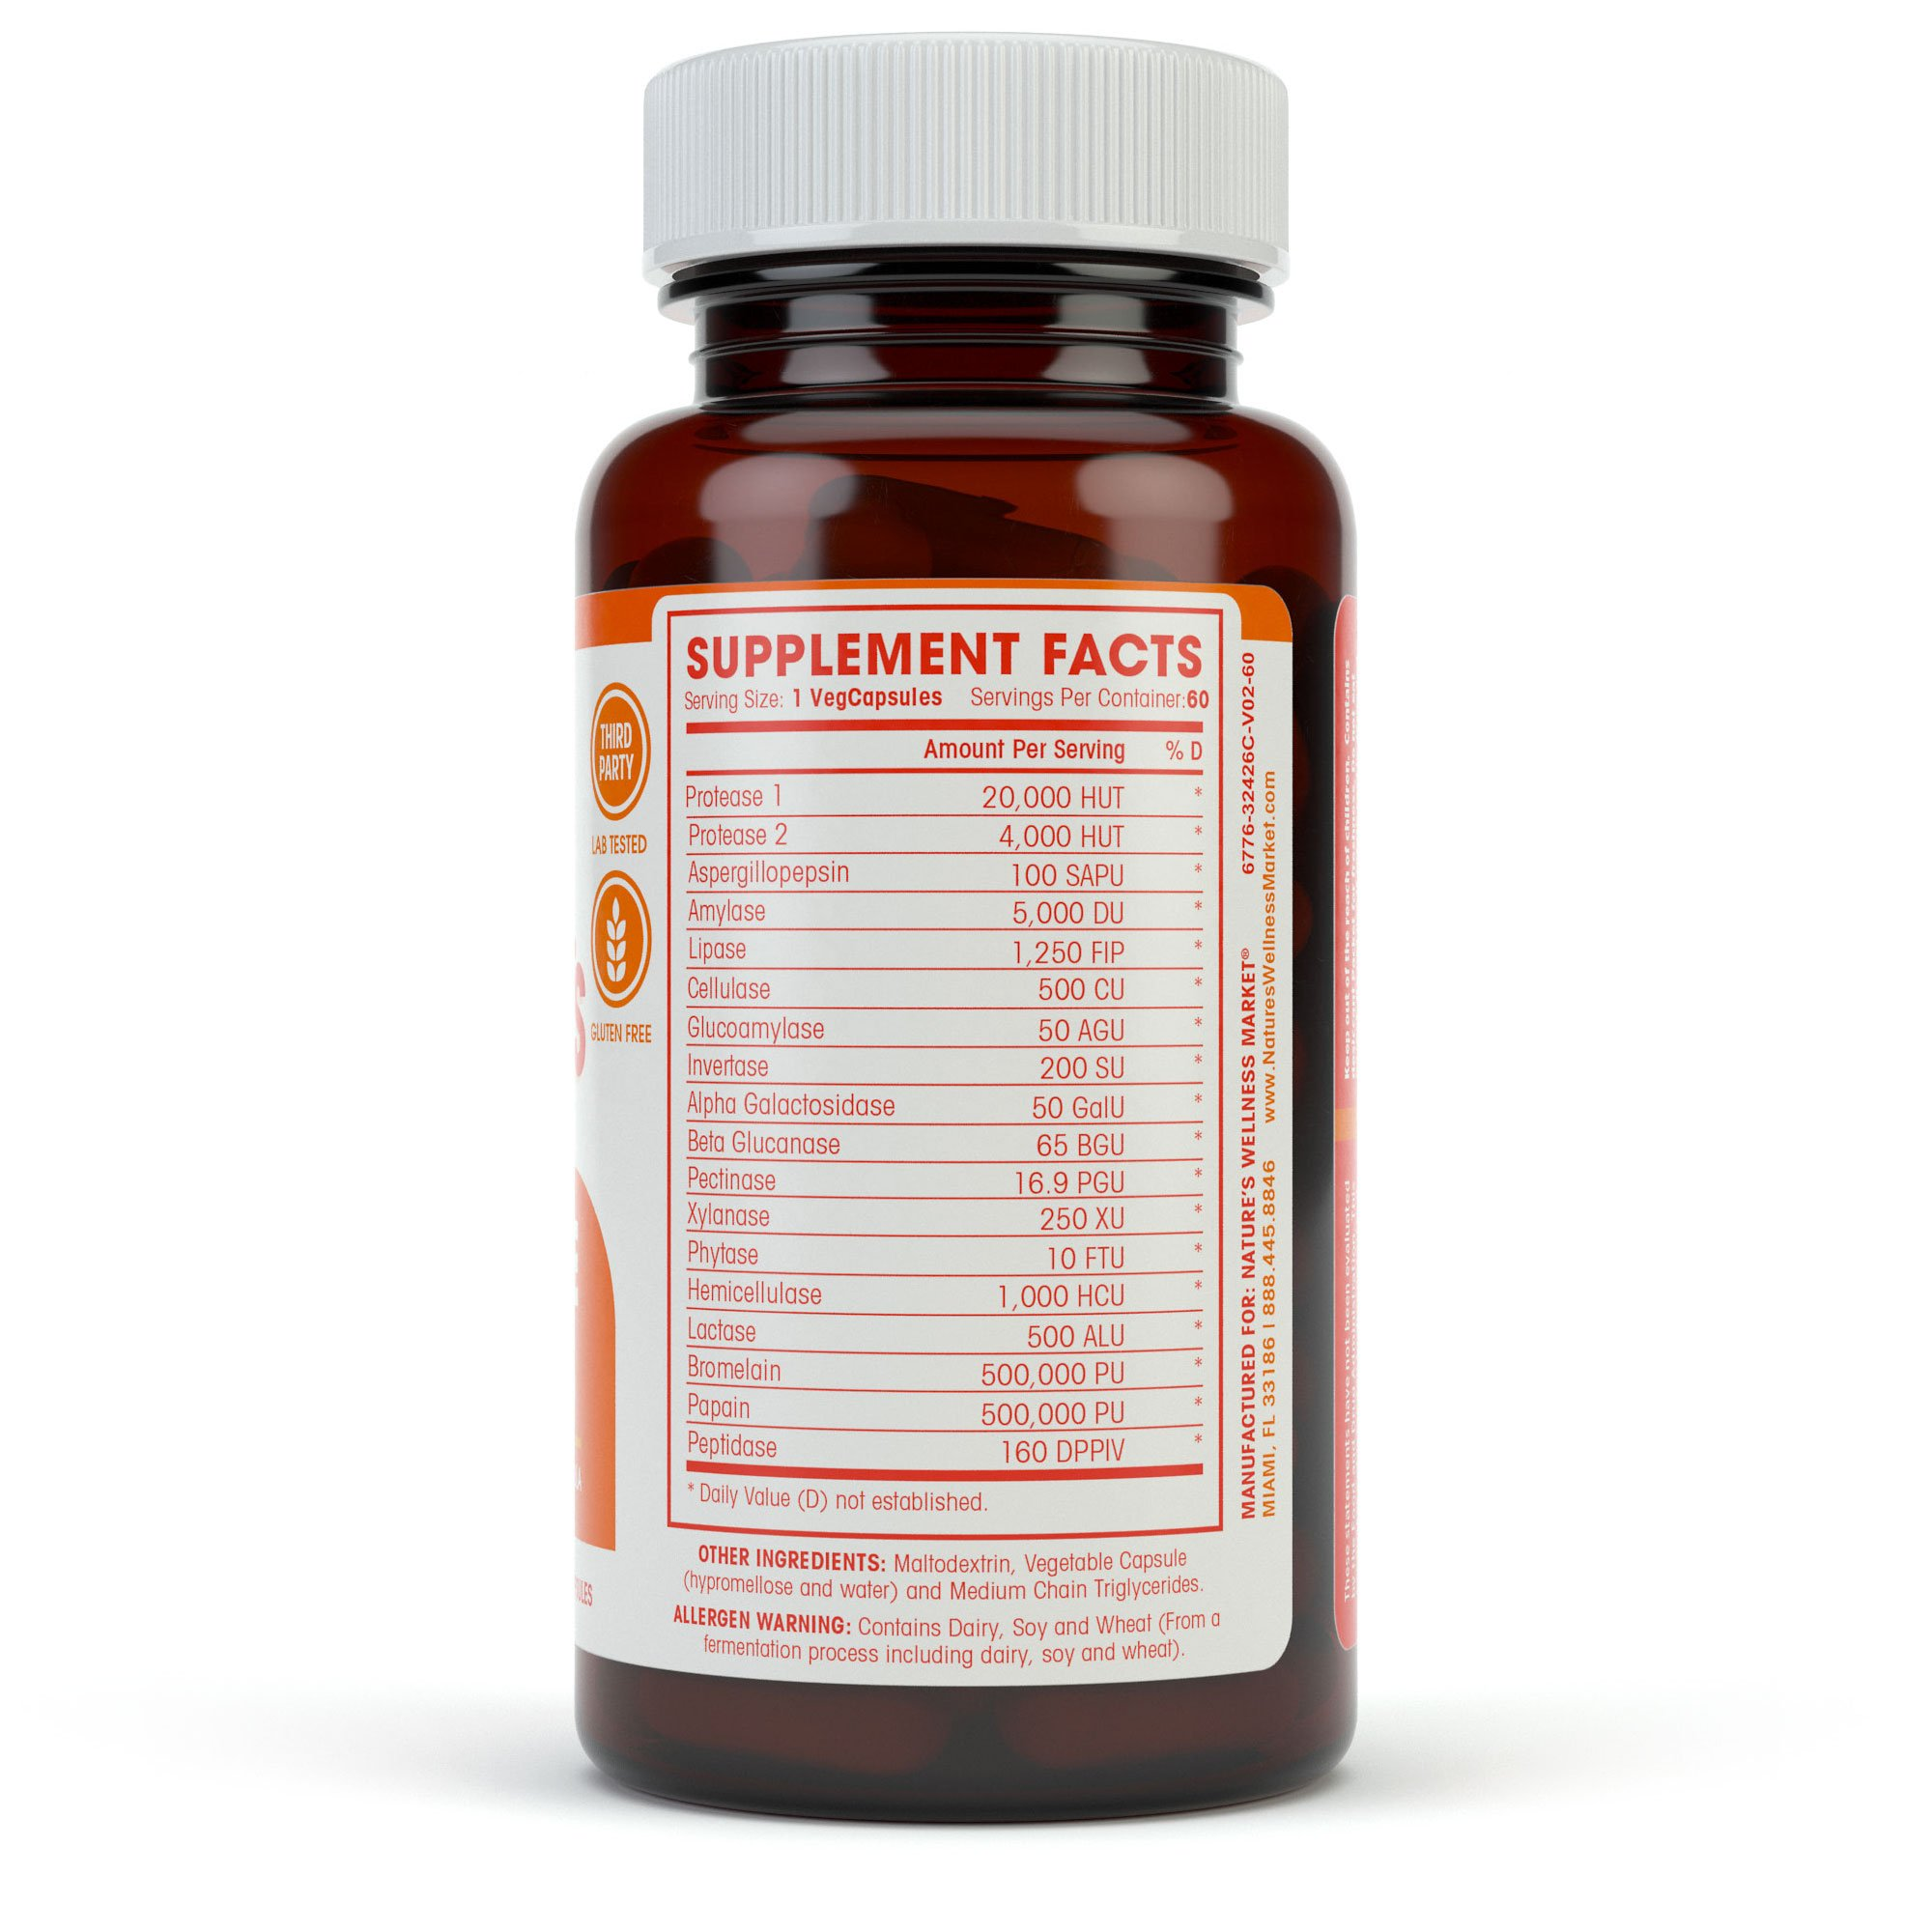 Digestive Enzymes Complete - Advanced Multi Enzyme Supplement for Better Digestion & Absorption. Help Gas Relief, Discomfort, Bloating, IBS, Gluten & Lactose Intolerance by Natures Wellness (Image #4)